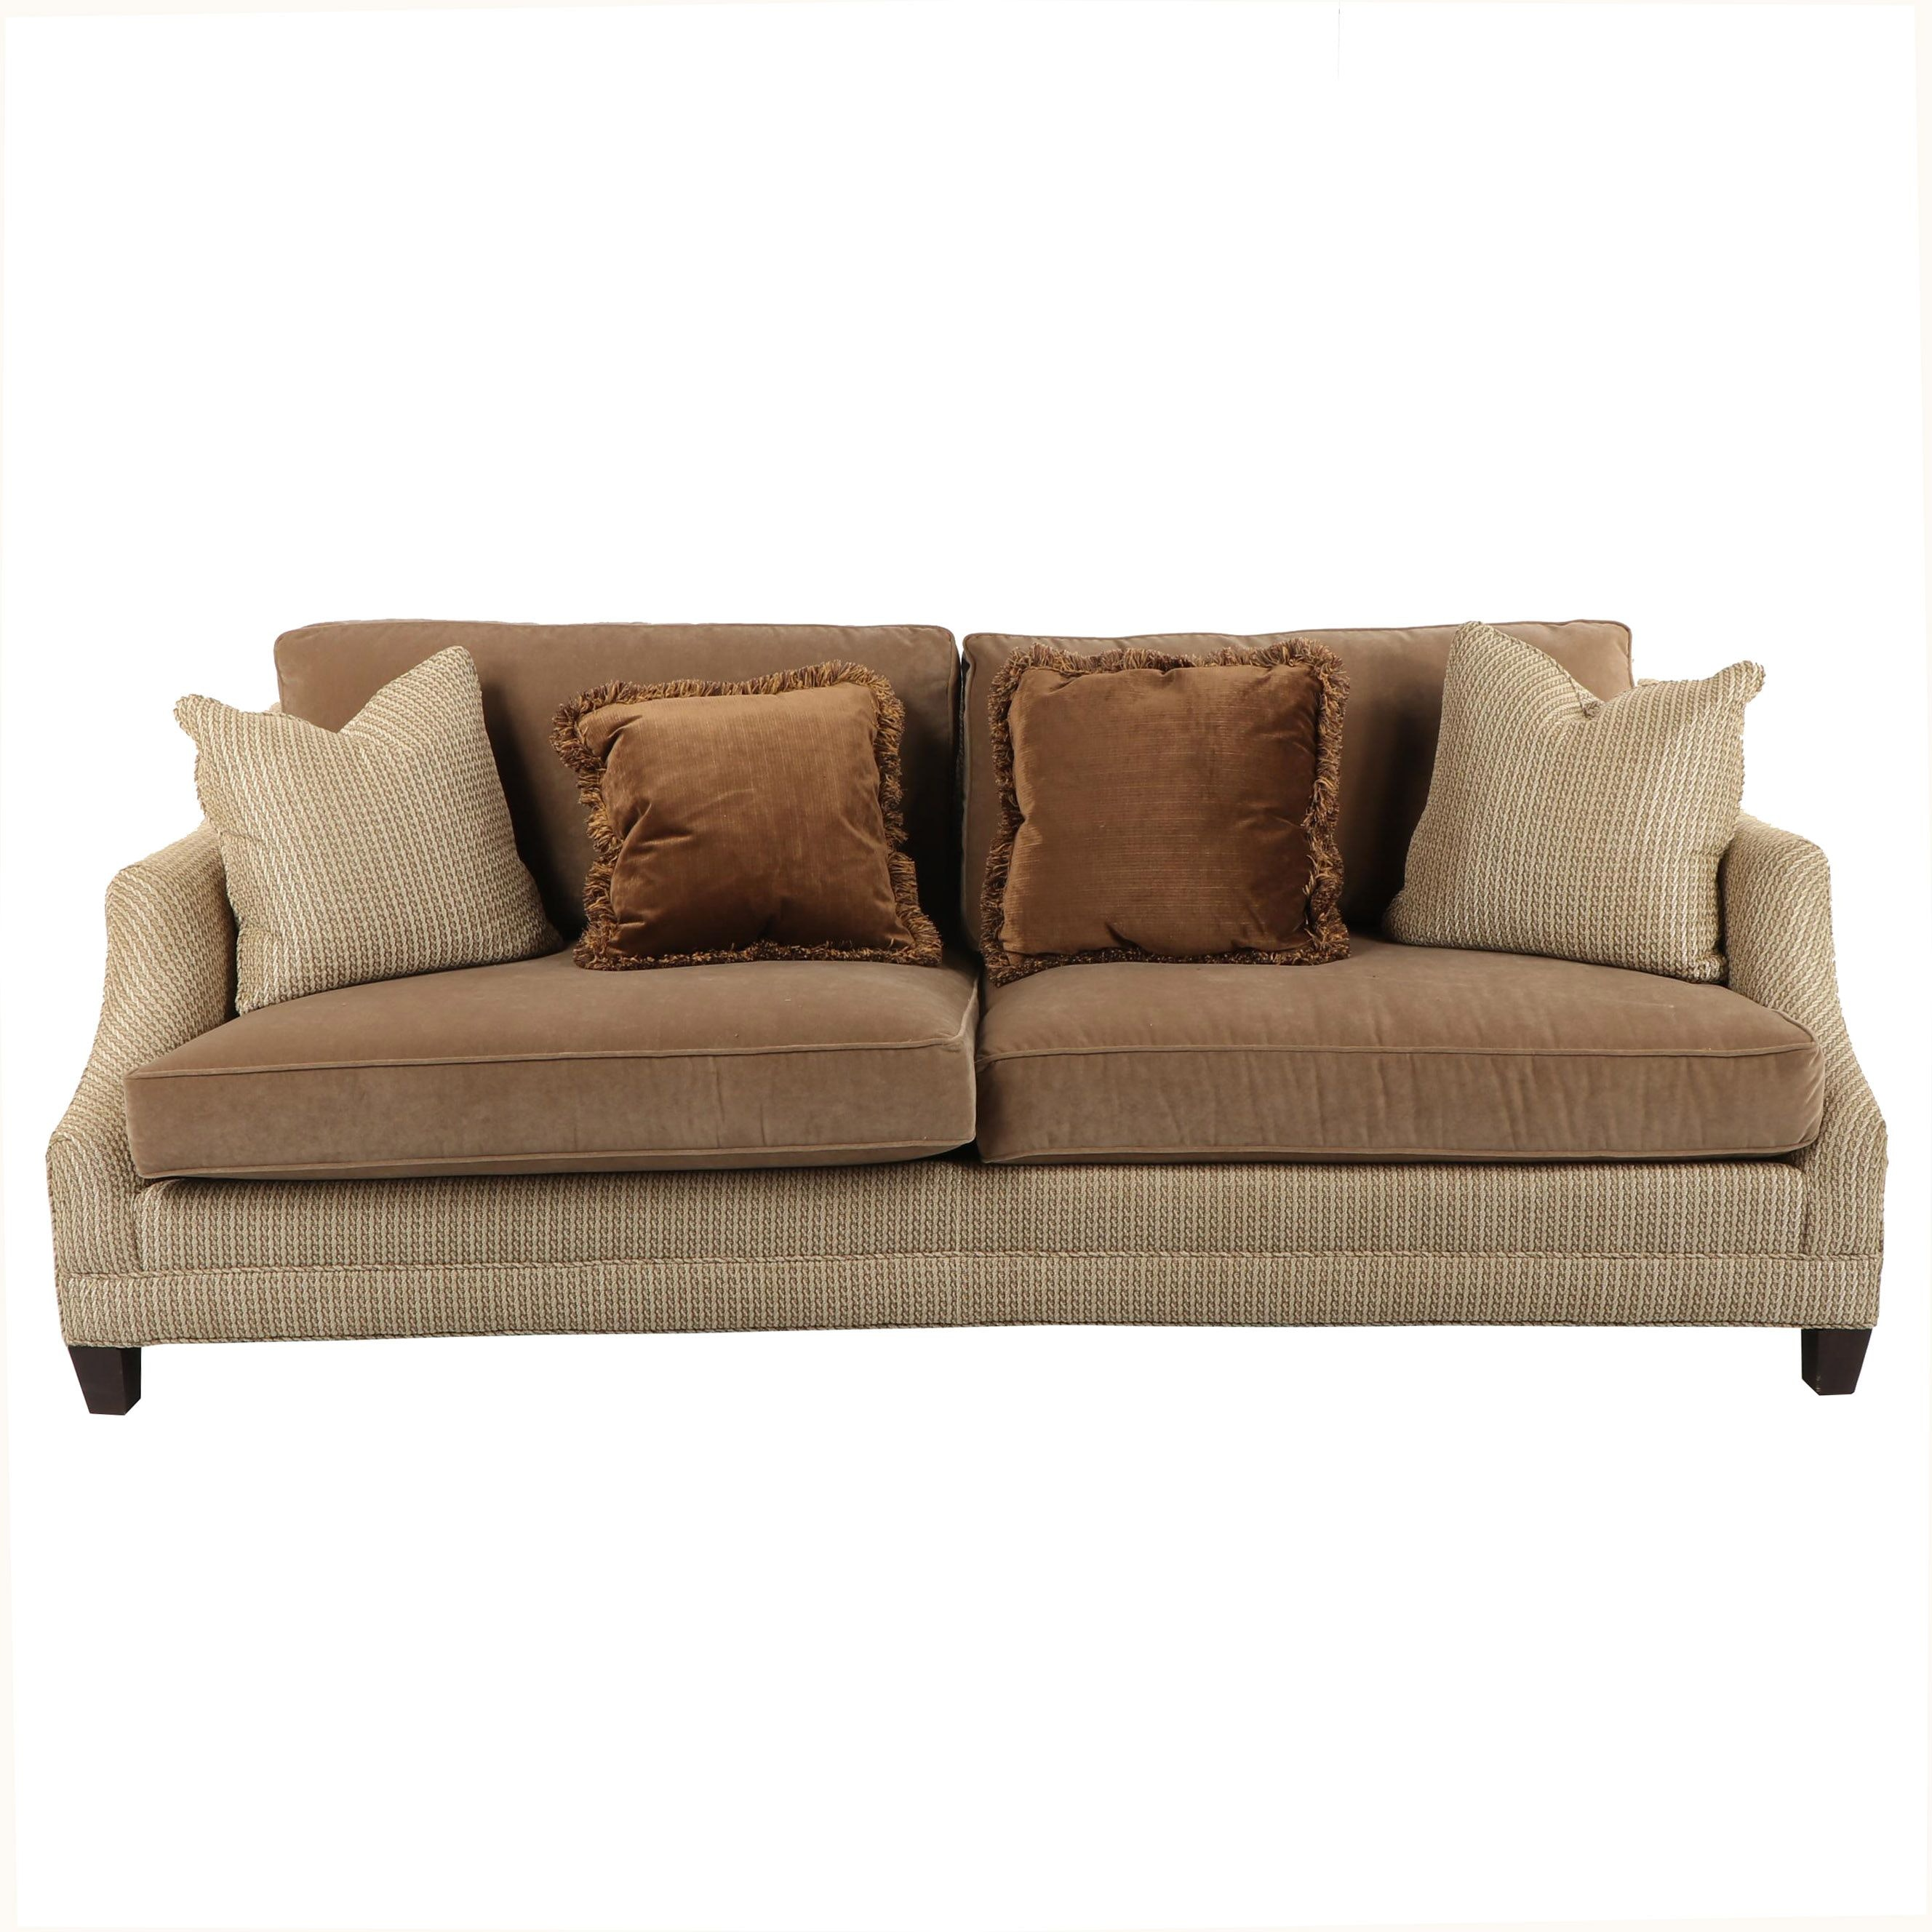 Upholstered Sofa By Taylor King ...